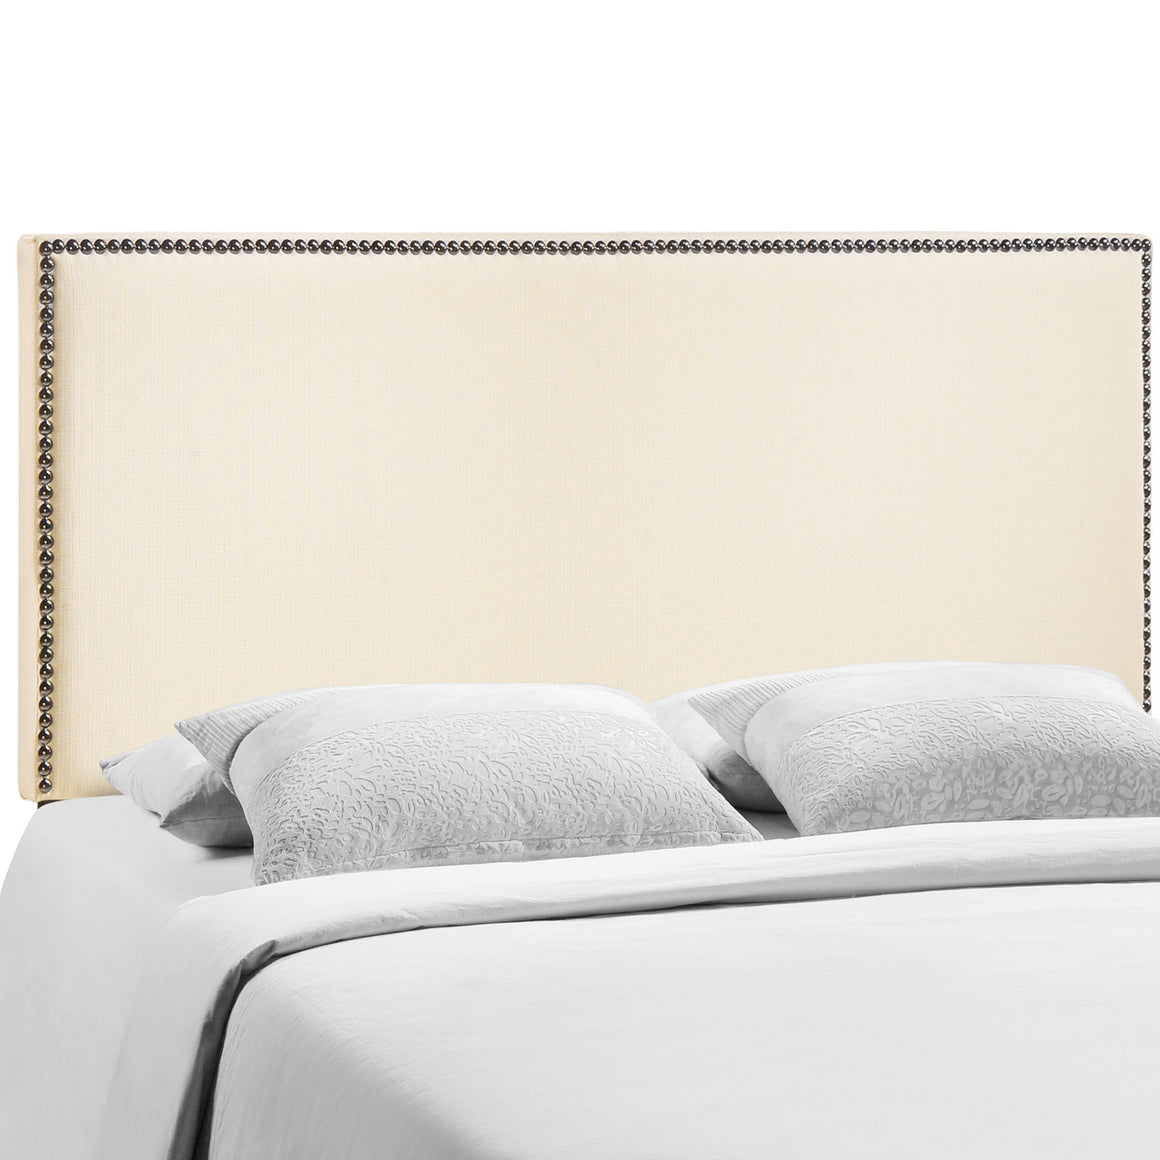 Region King Nailhead Upholstered Headboard - taylor ray decor